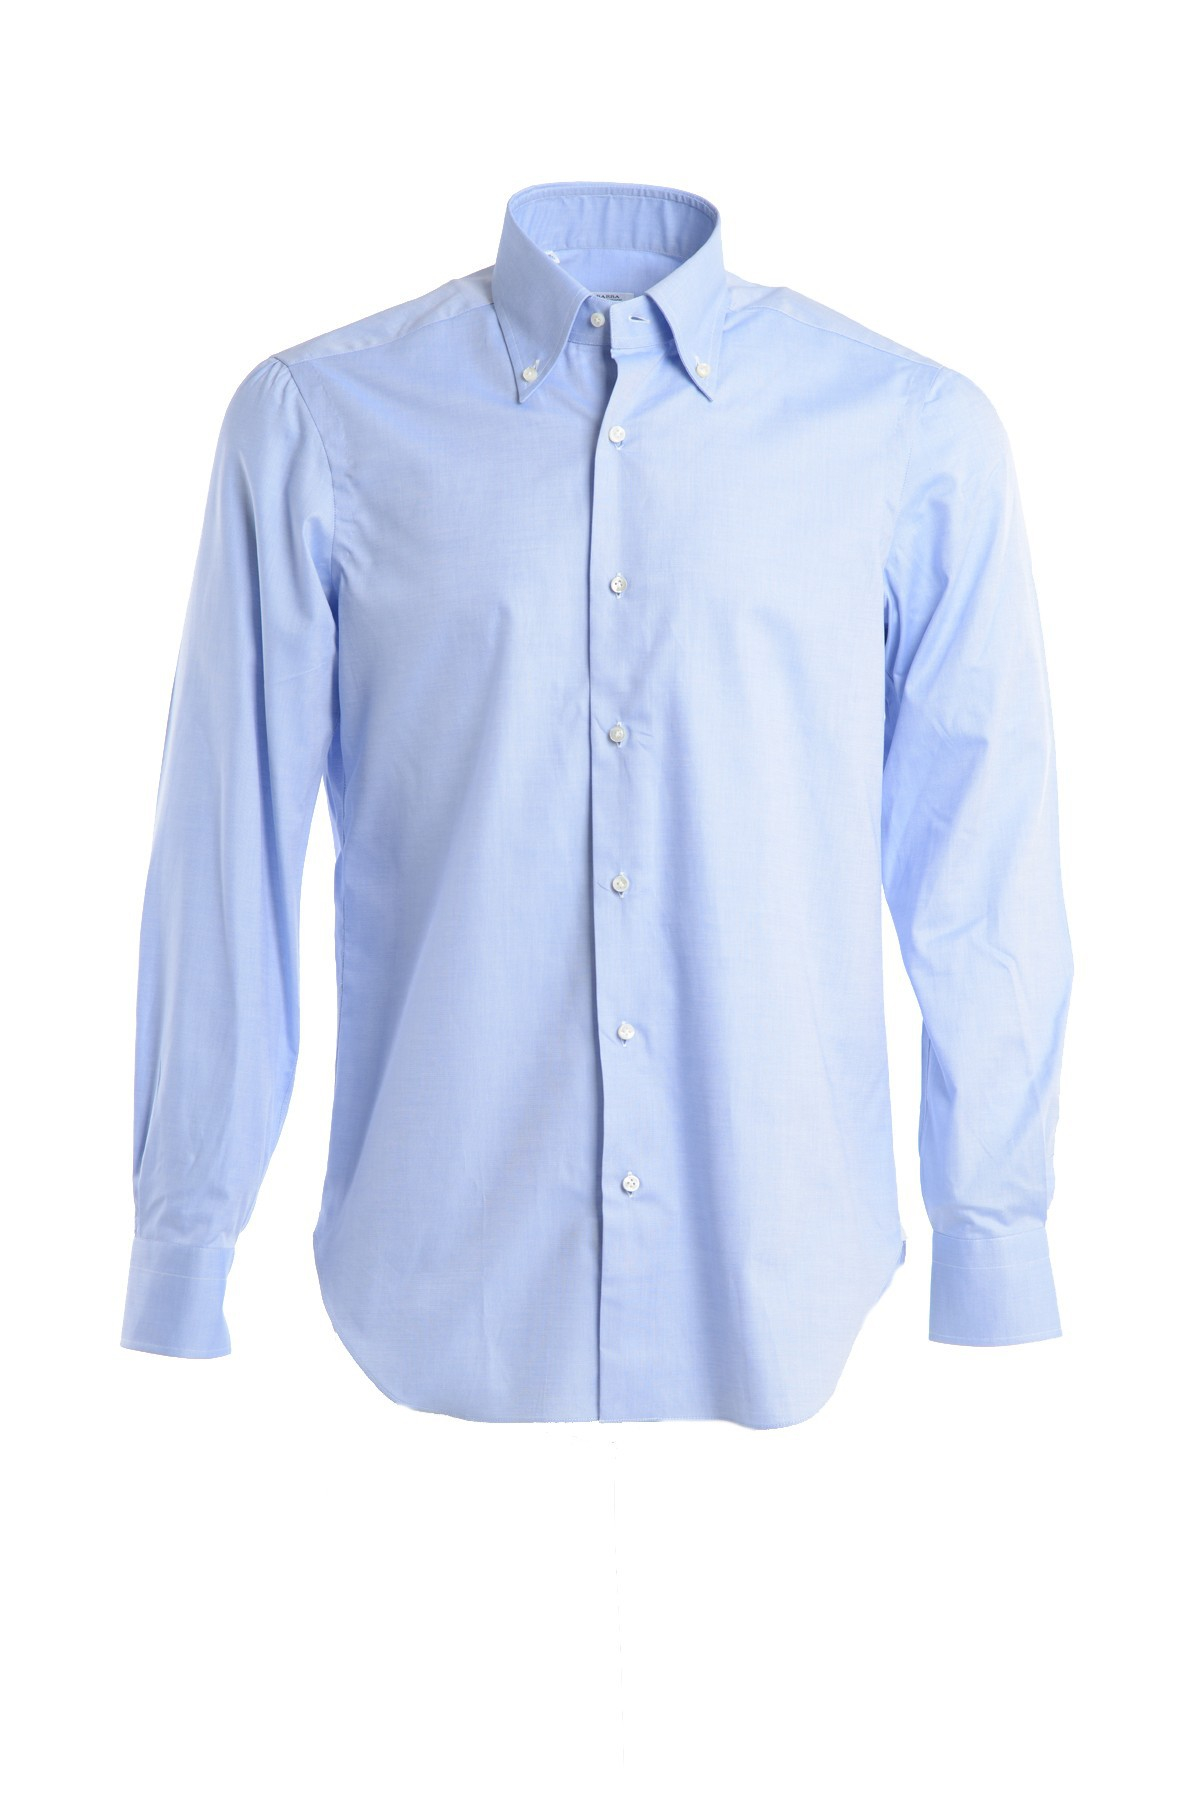 Barba Solid Colour Button Down Shirt In Blue For Men